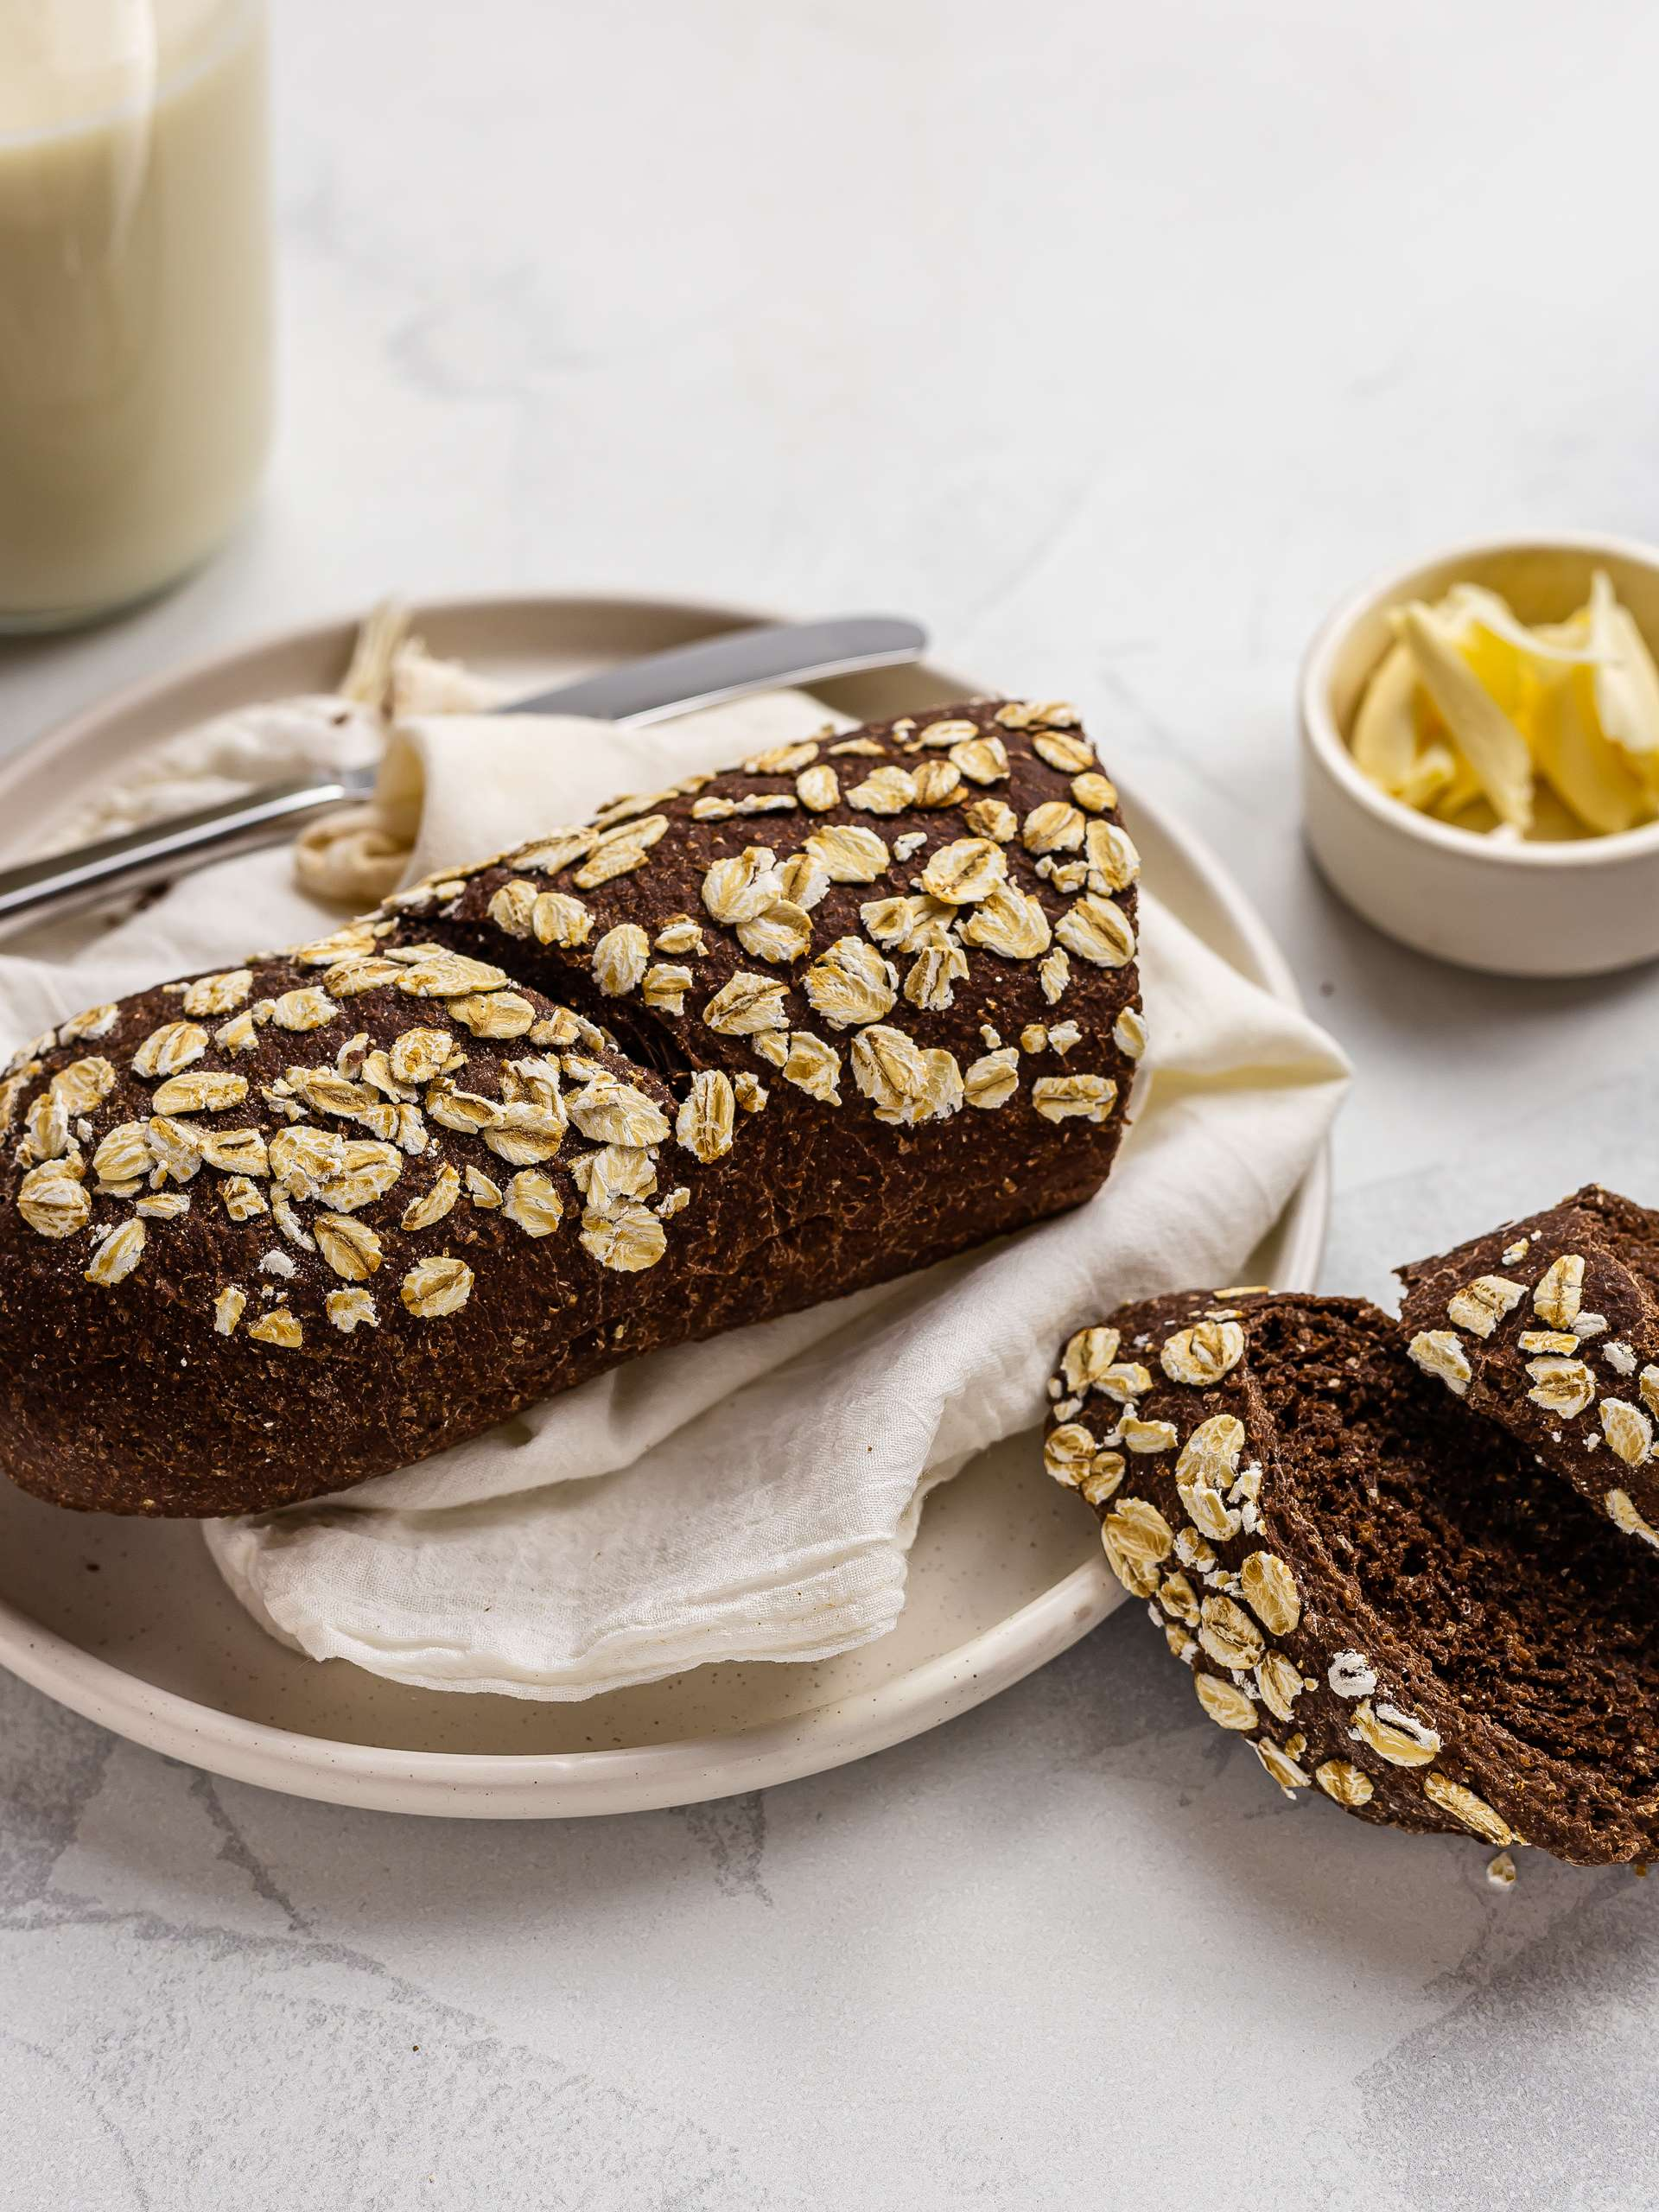 Cheesecake Factory Brown Bread Thumbnail